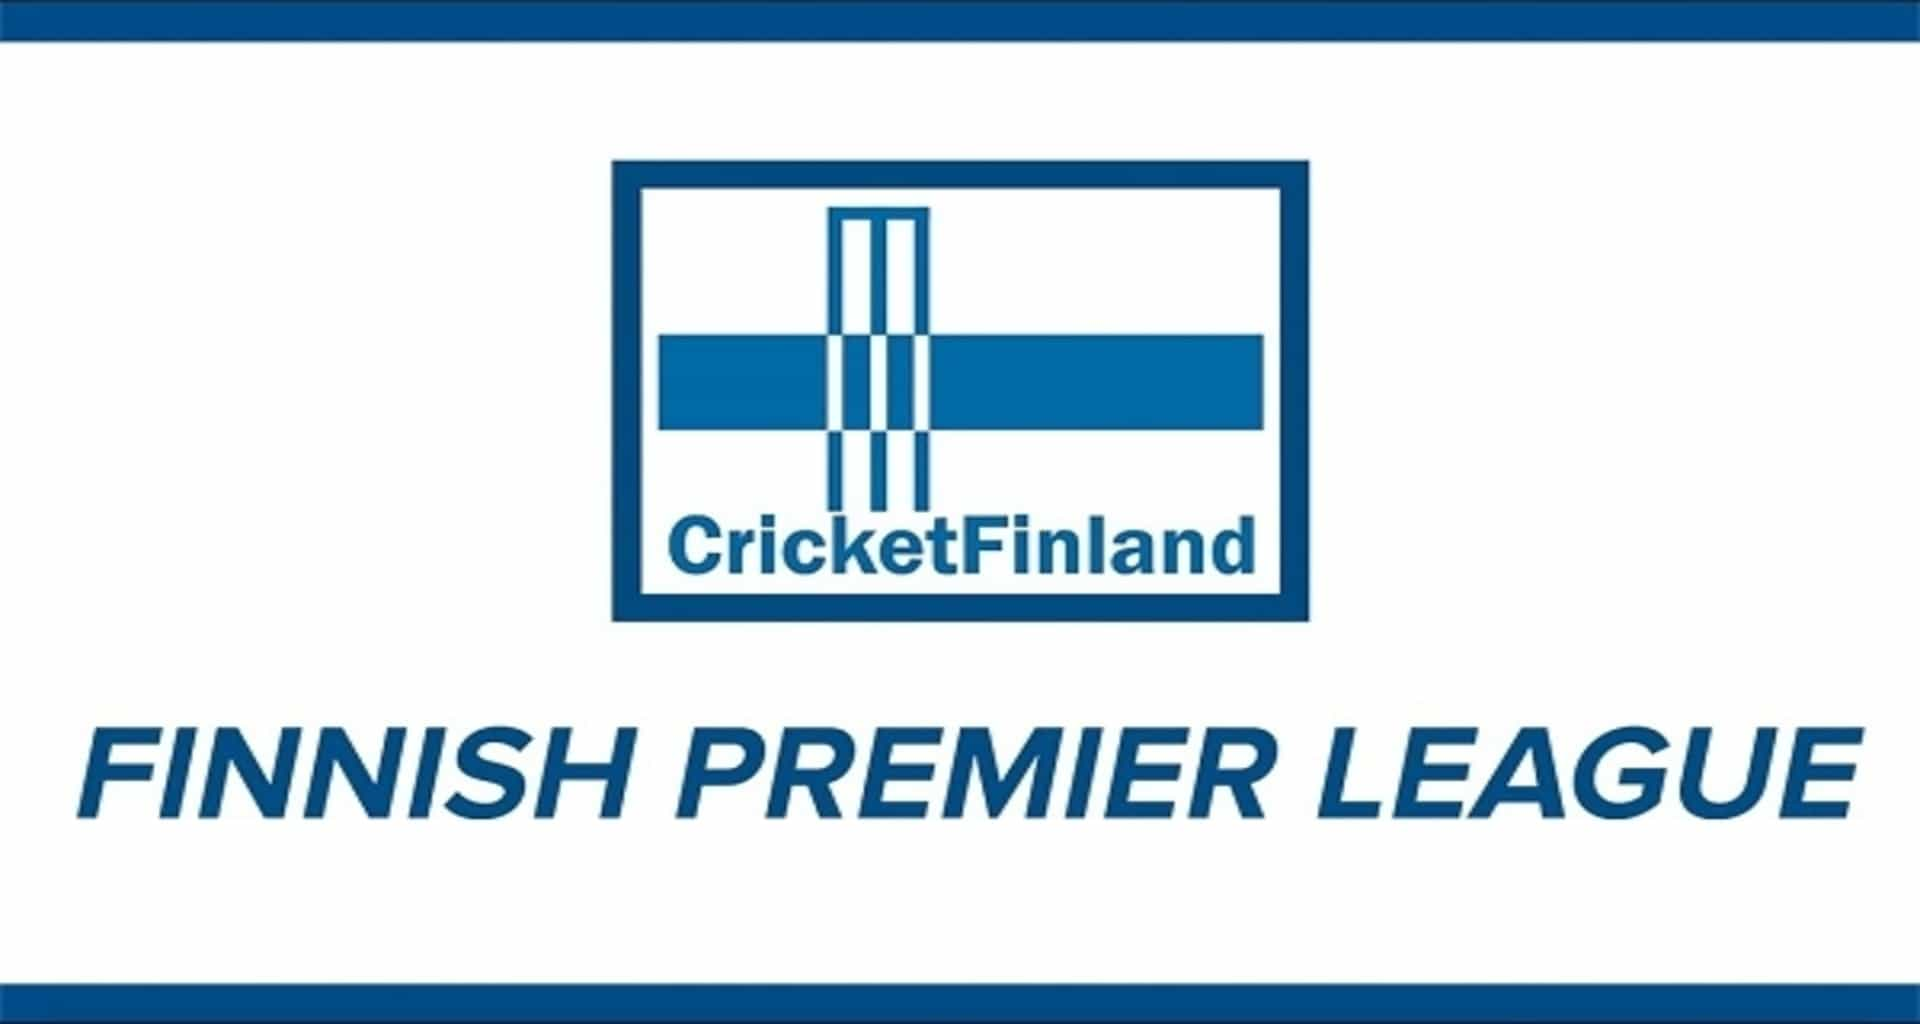 Finnish Premier League T20: Live Streaming, Schedule, Squads, Date and Timings